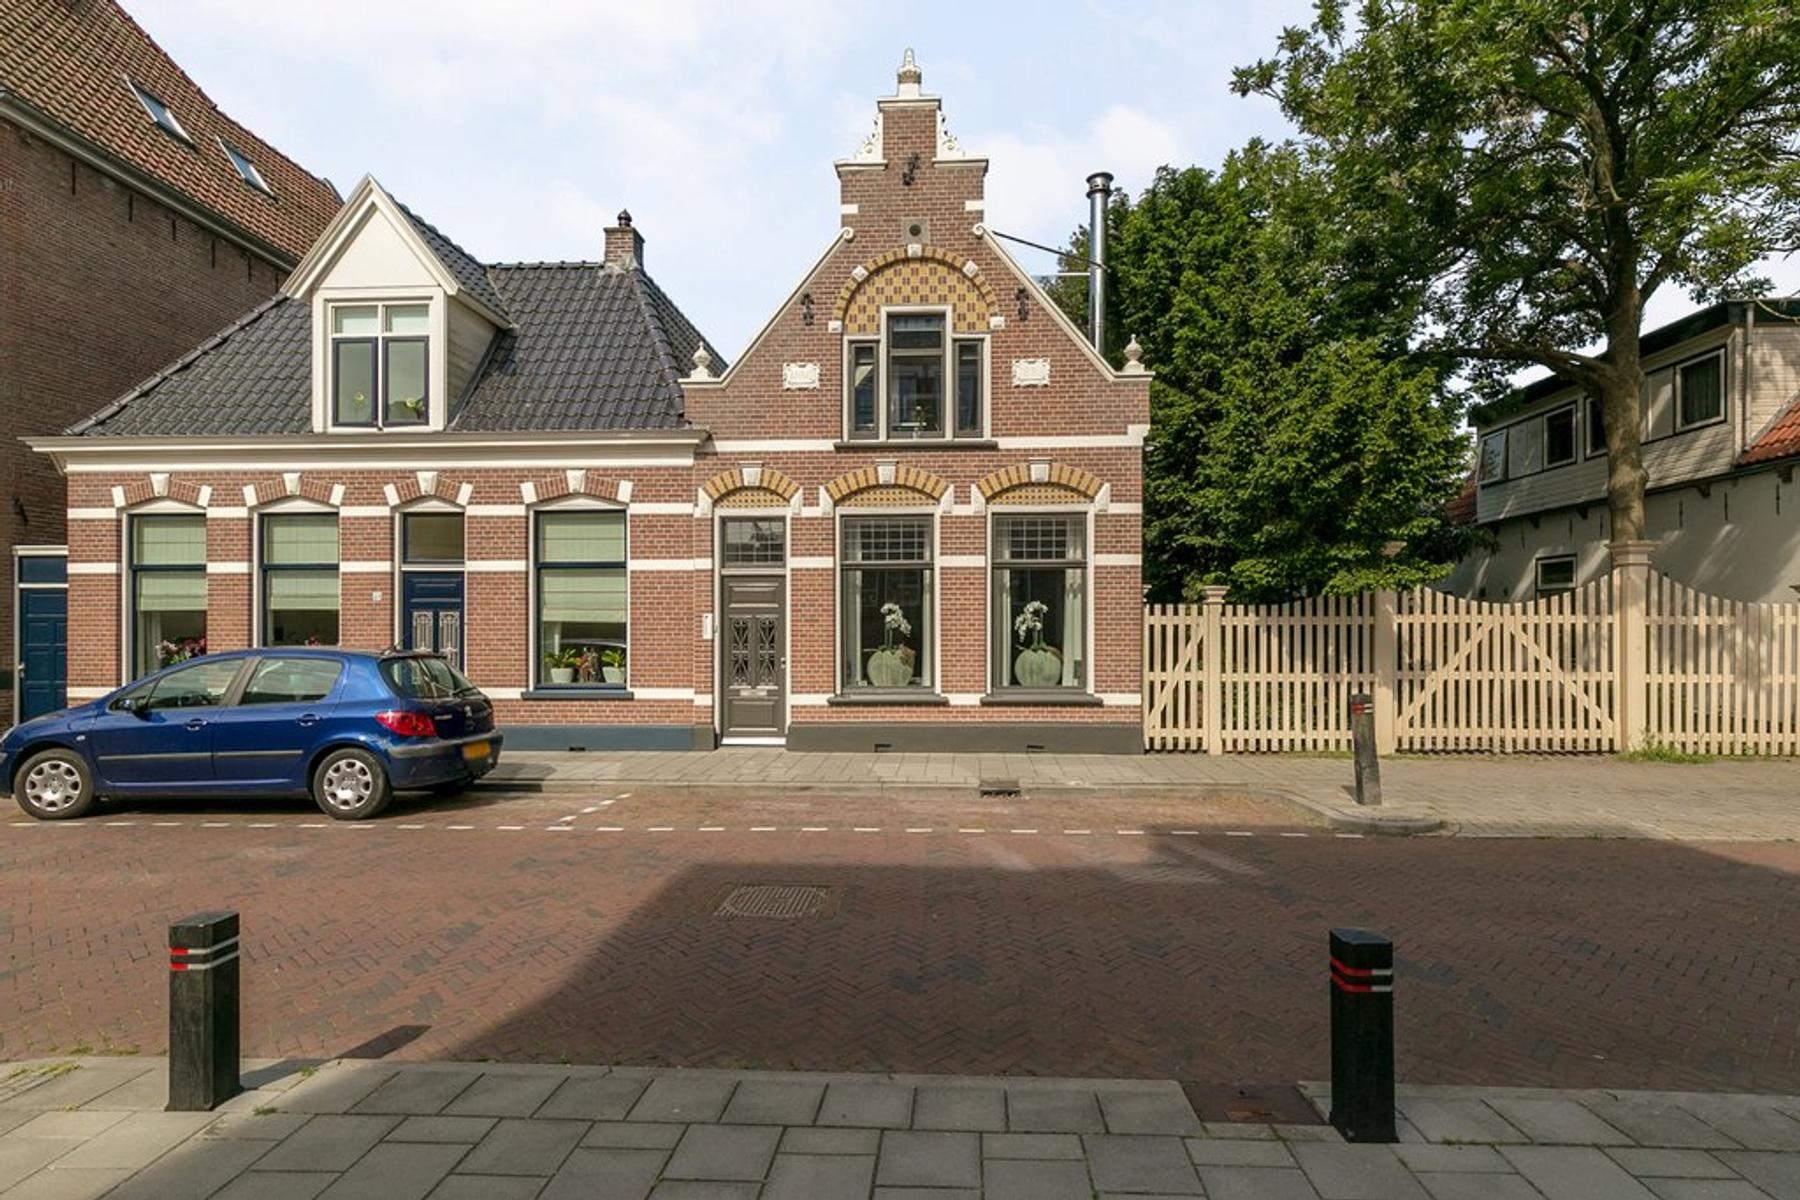 Catharinastraat 38 in Meppel 7941 JG